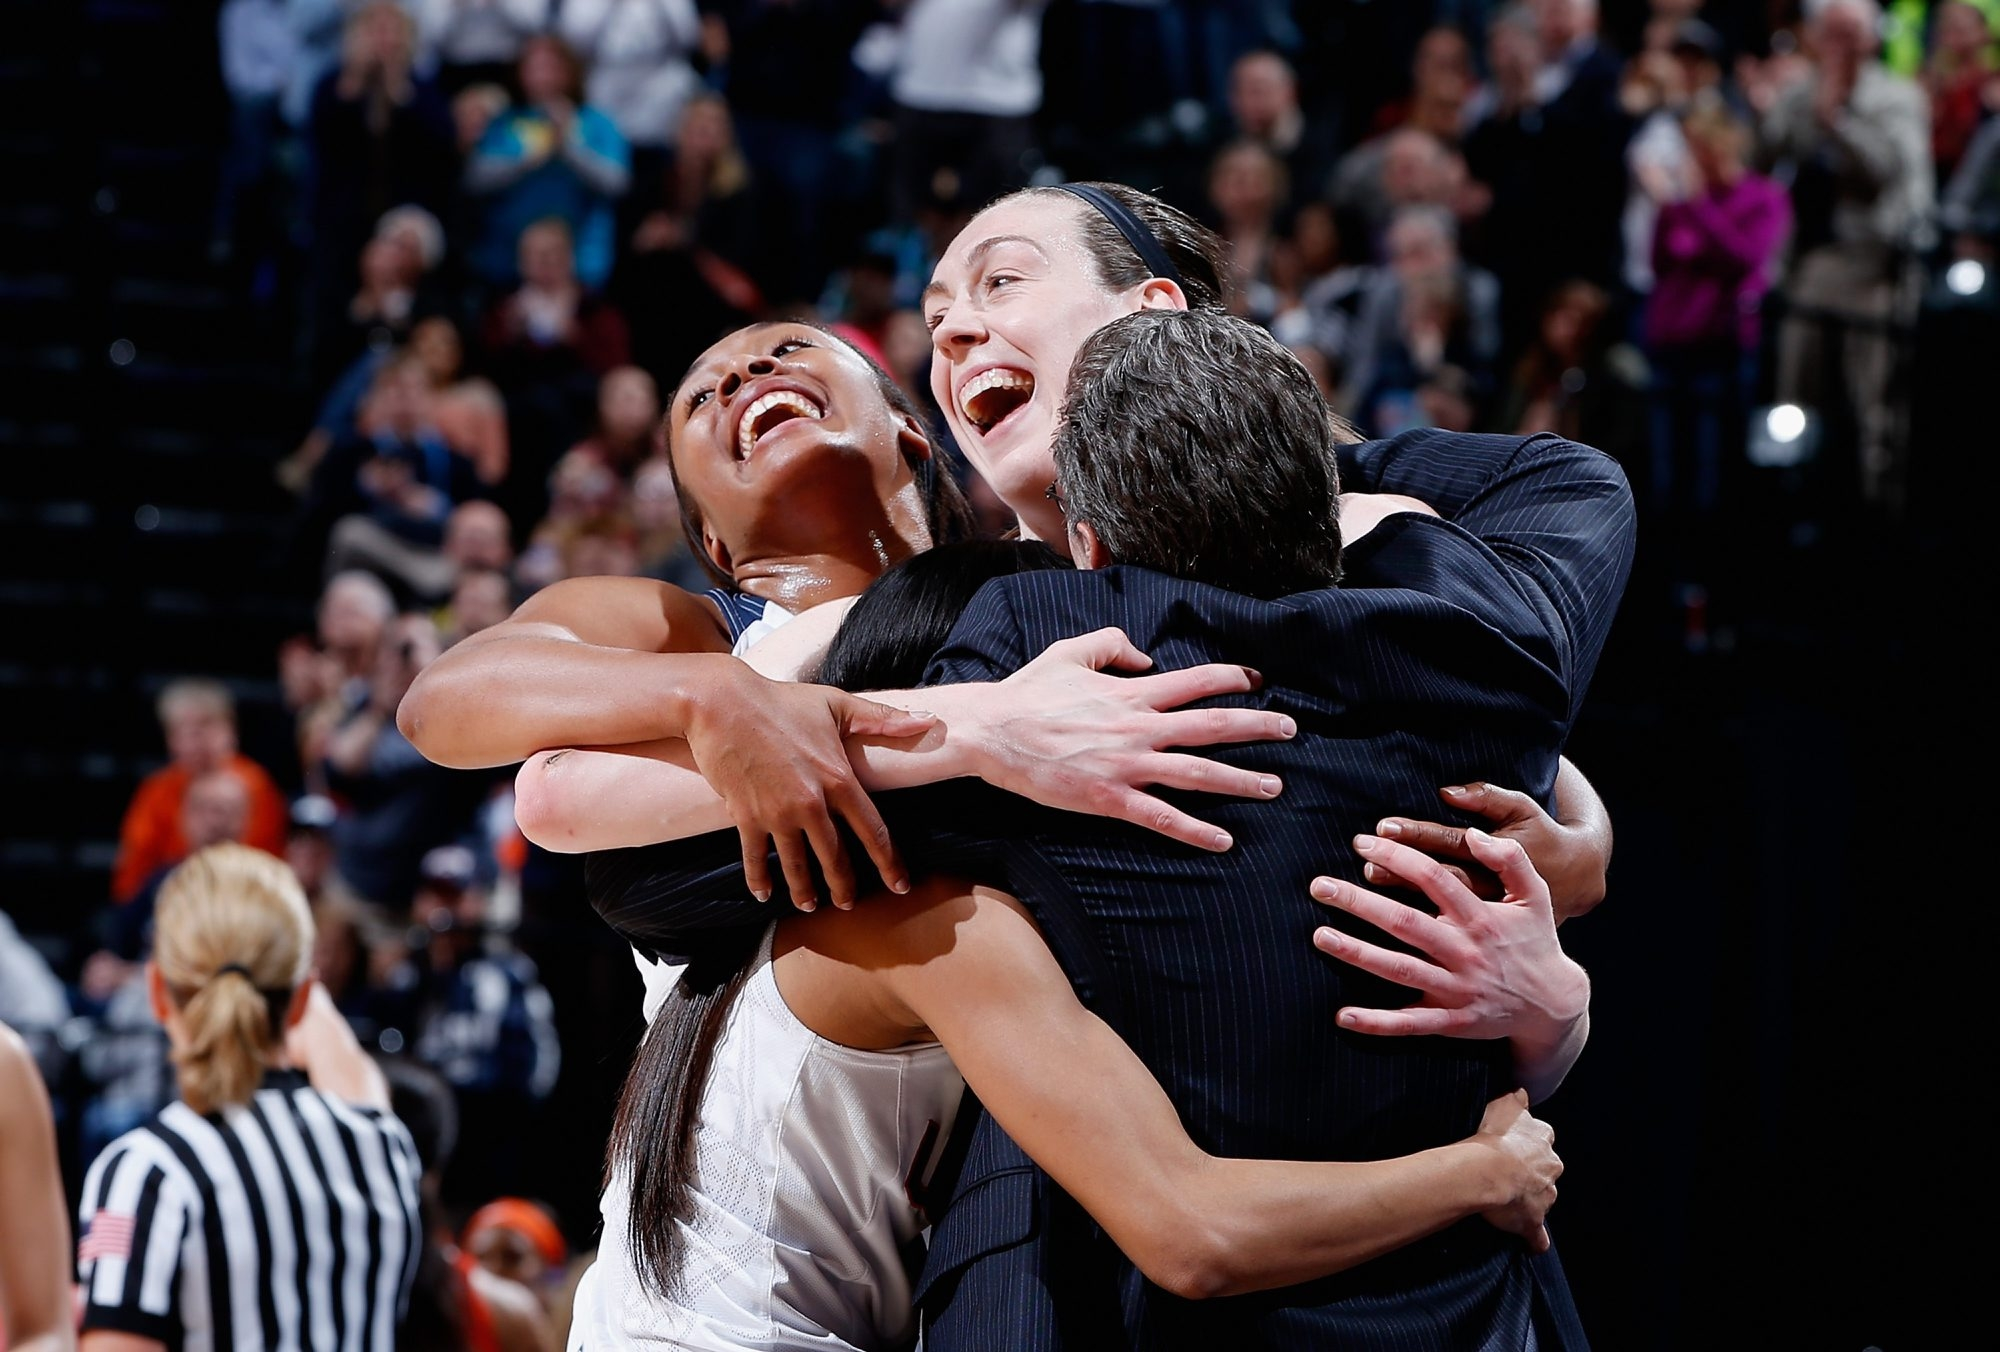 Breanna Stewart, Morgan Tuck, Moriah Jefferson and head coach Geno Auriemma hug as the starters leave the game in the fourth quarter of the Huskies' 82-51 victory over Syracuse Tuesday in Indianapolis.